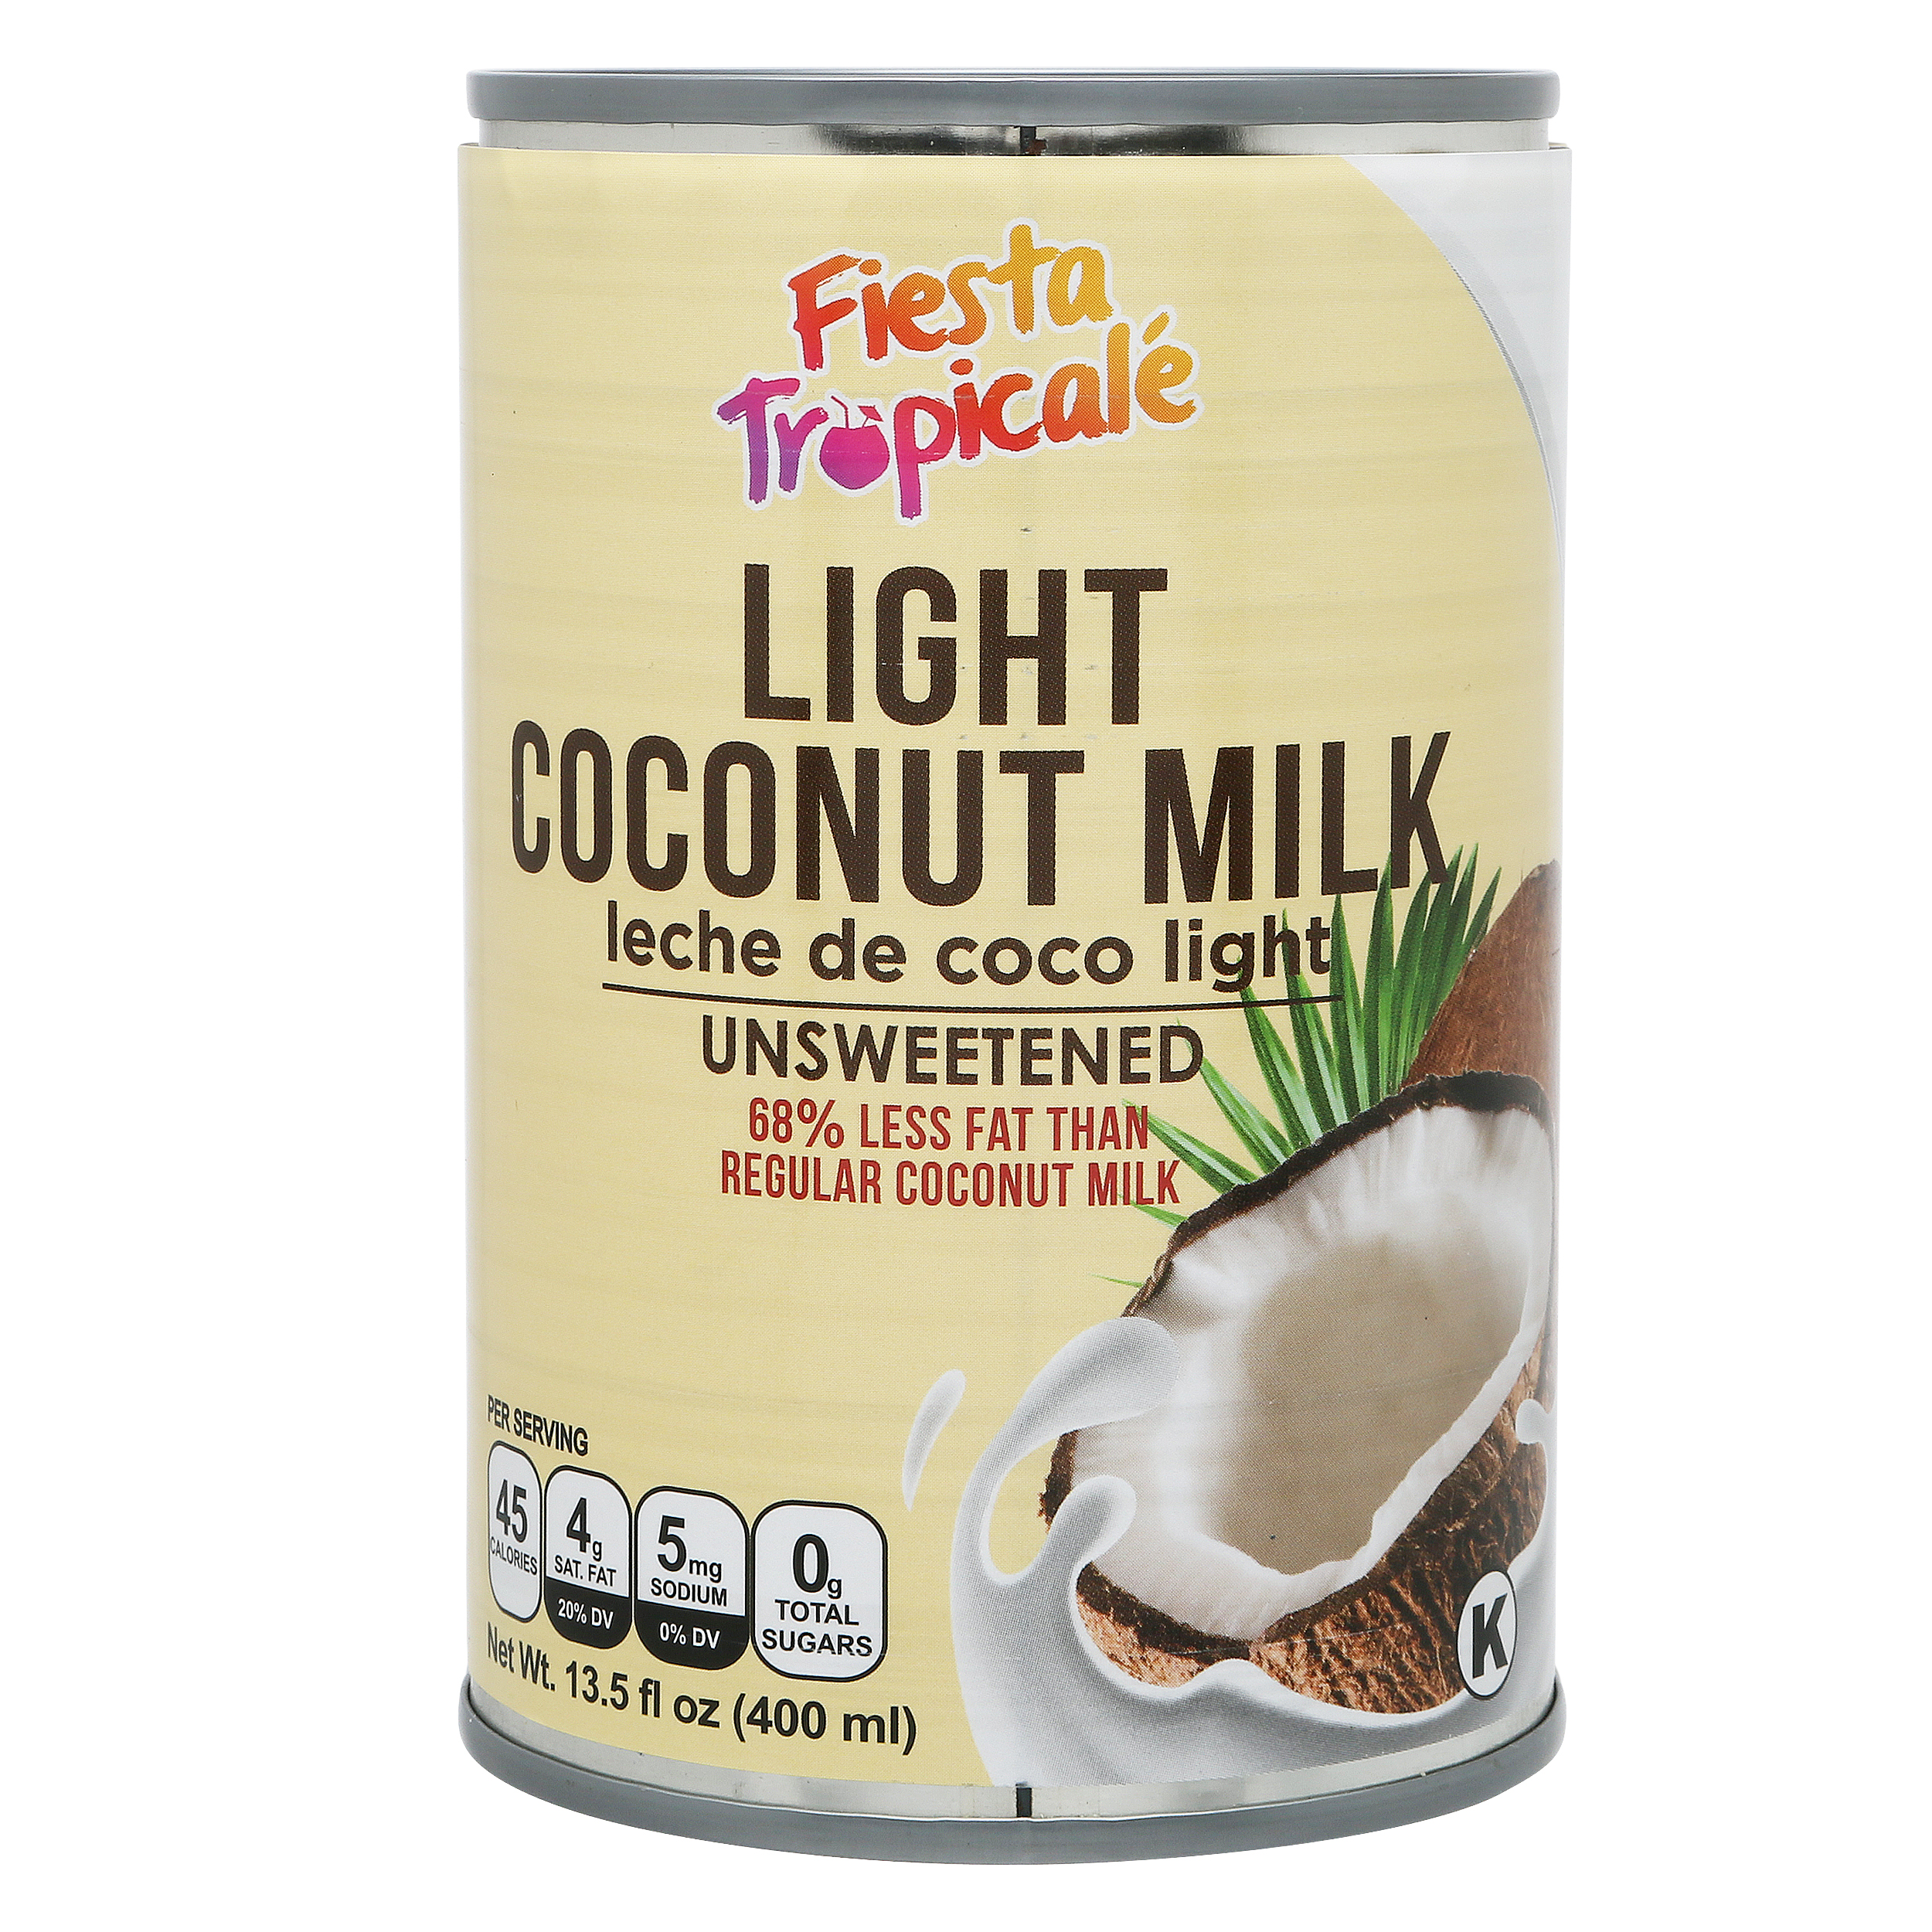 Fiesta Tropicale Light Coconut Milk_Front of Can